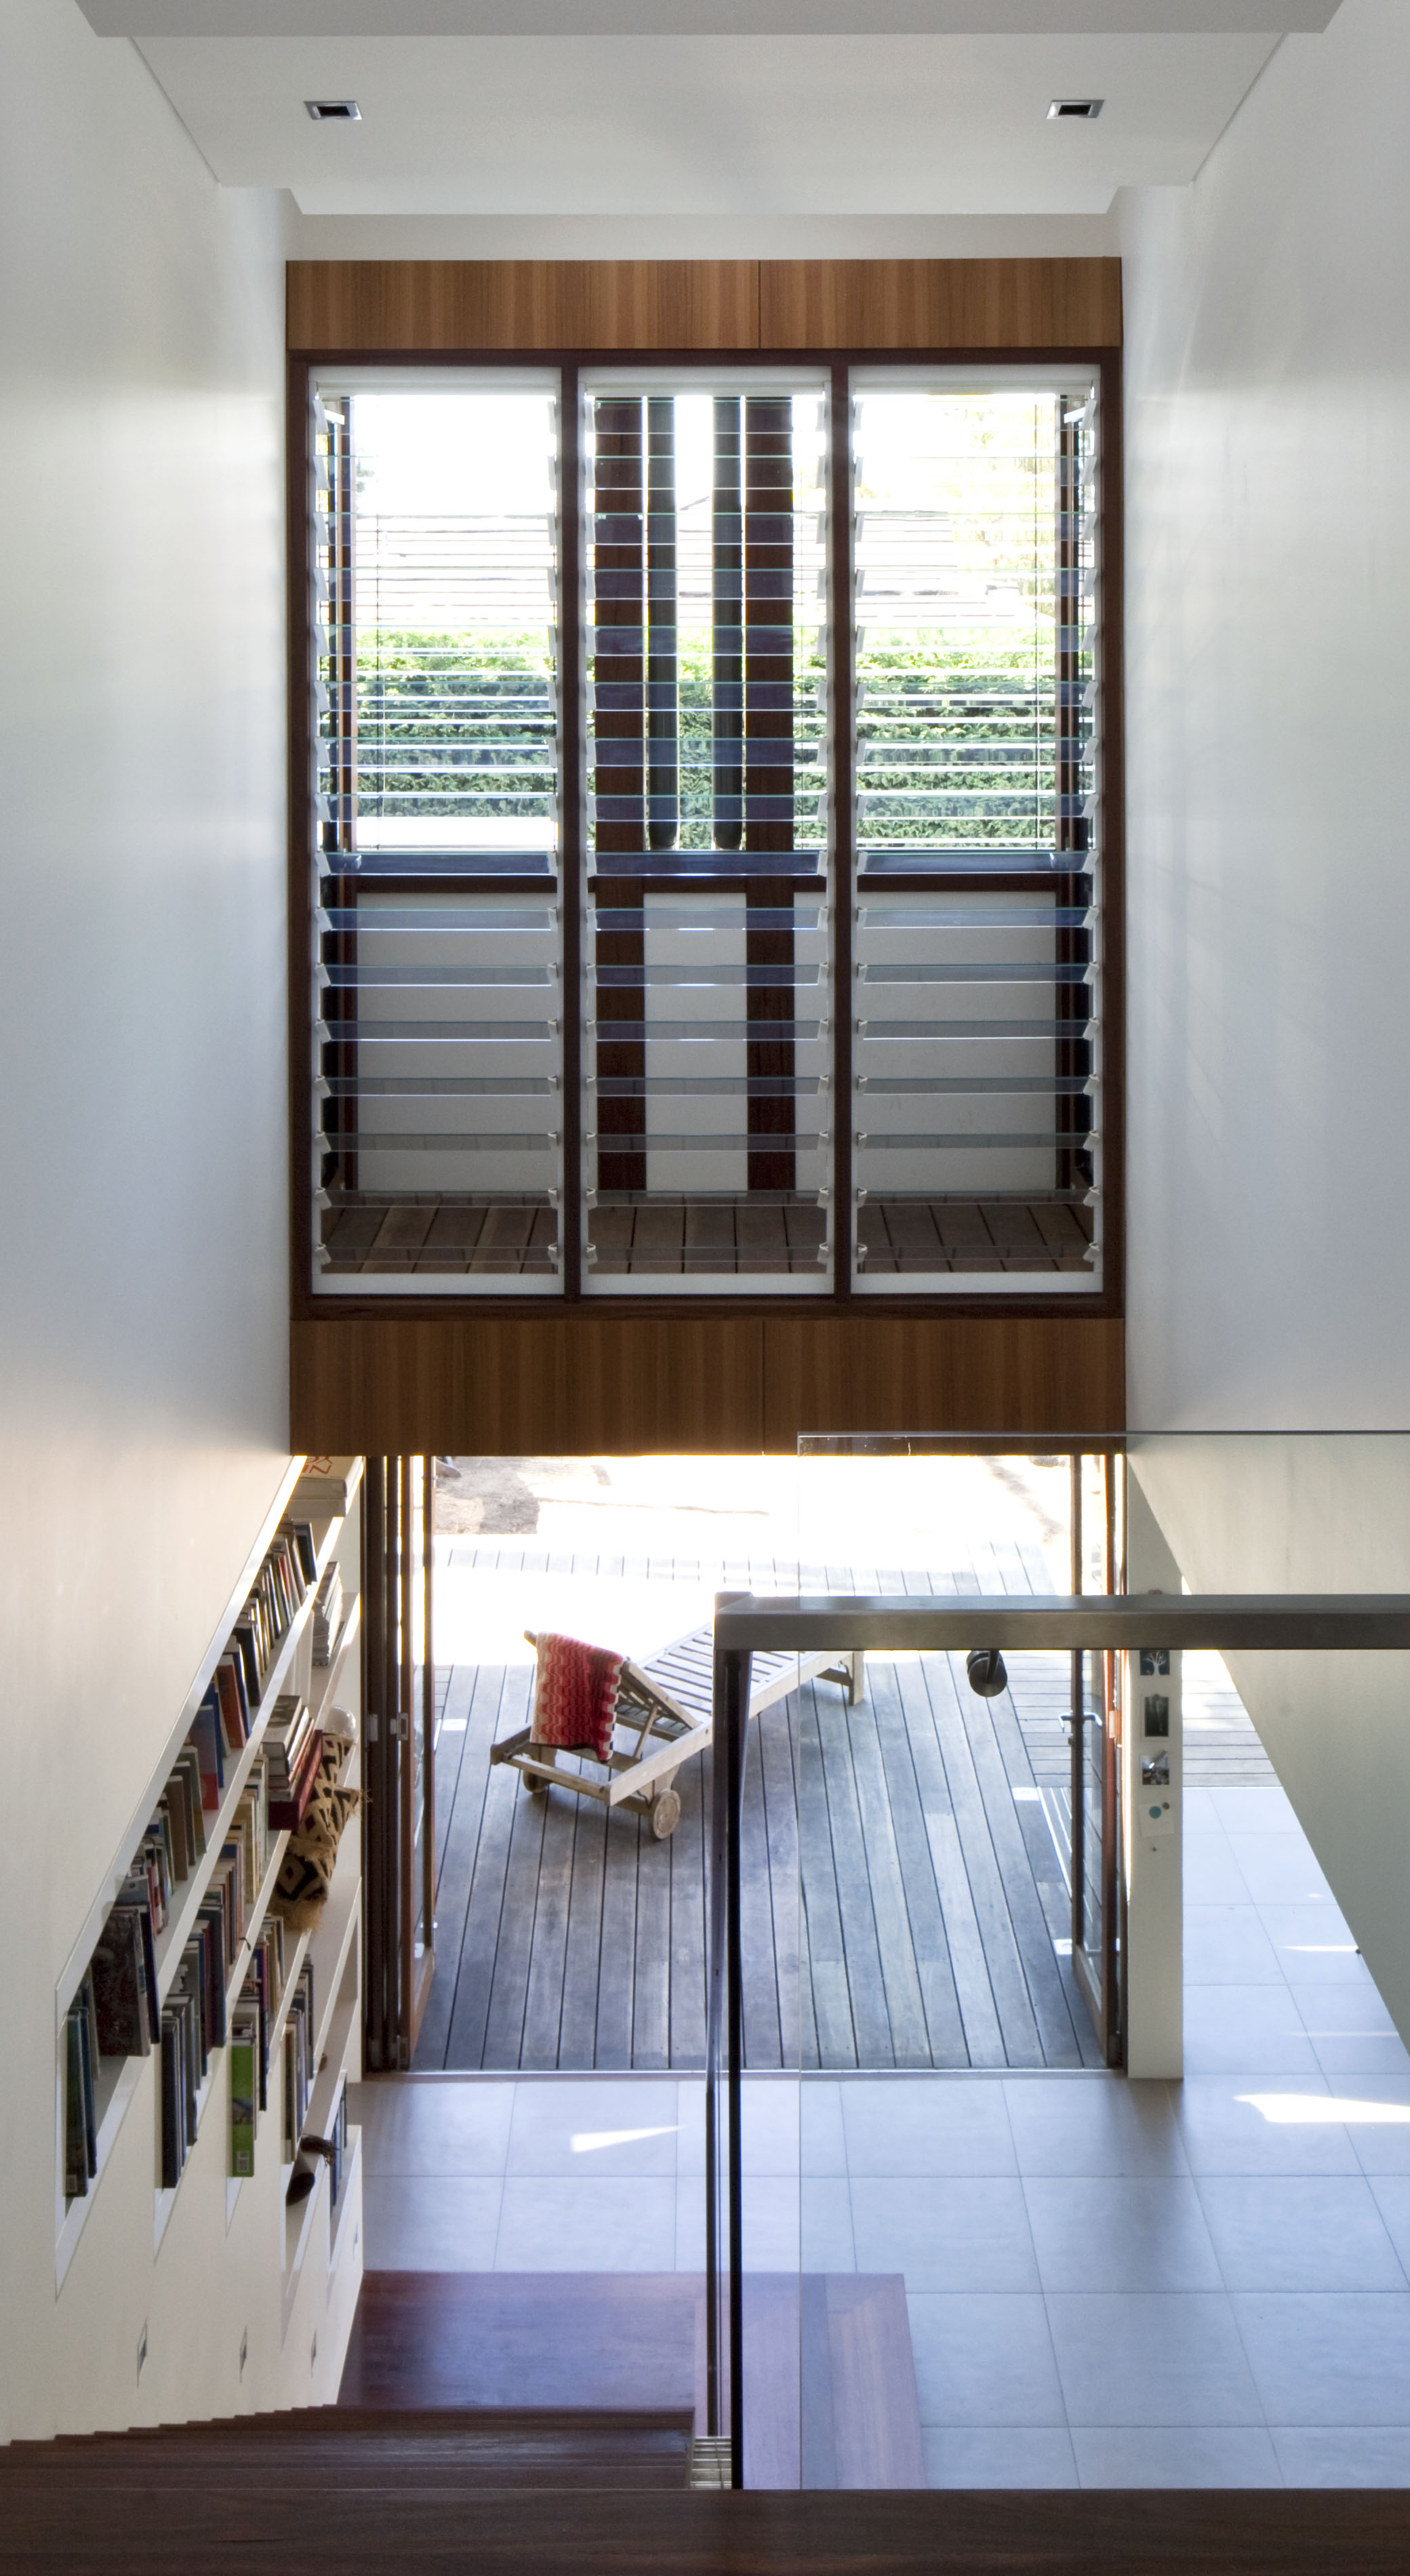 Staircase area showing floor to ceiling louvre windows